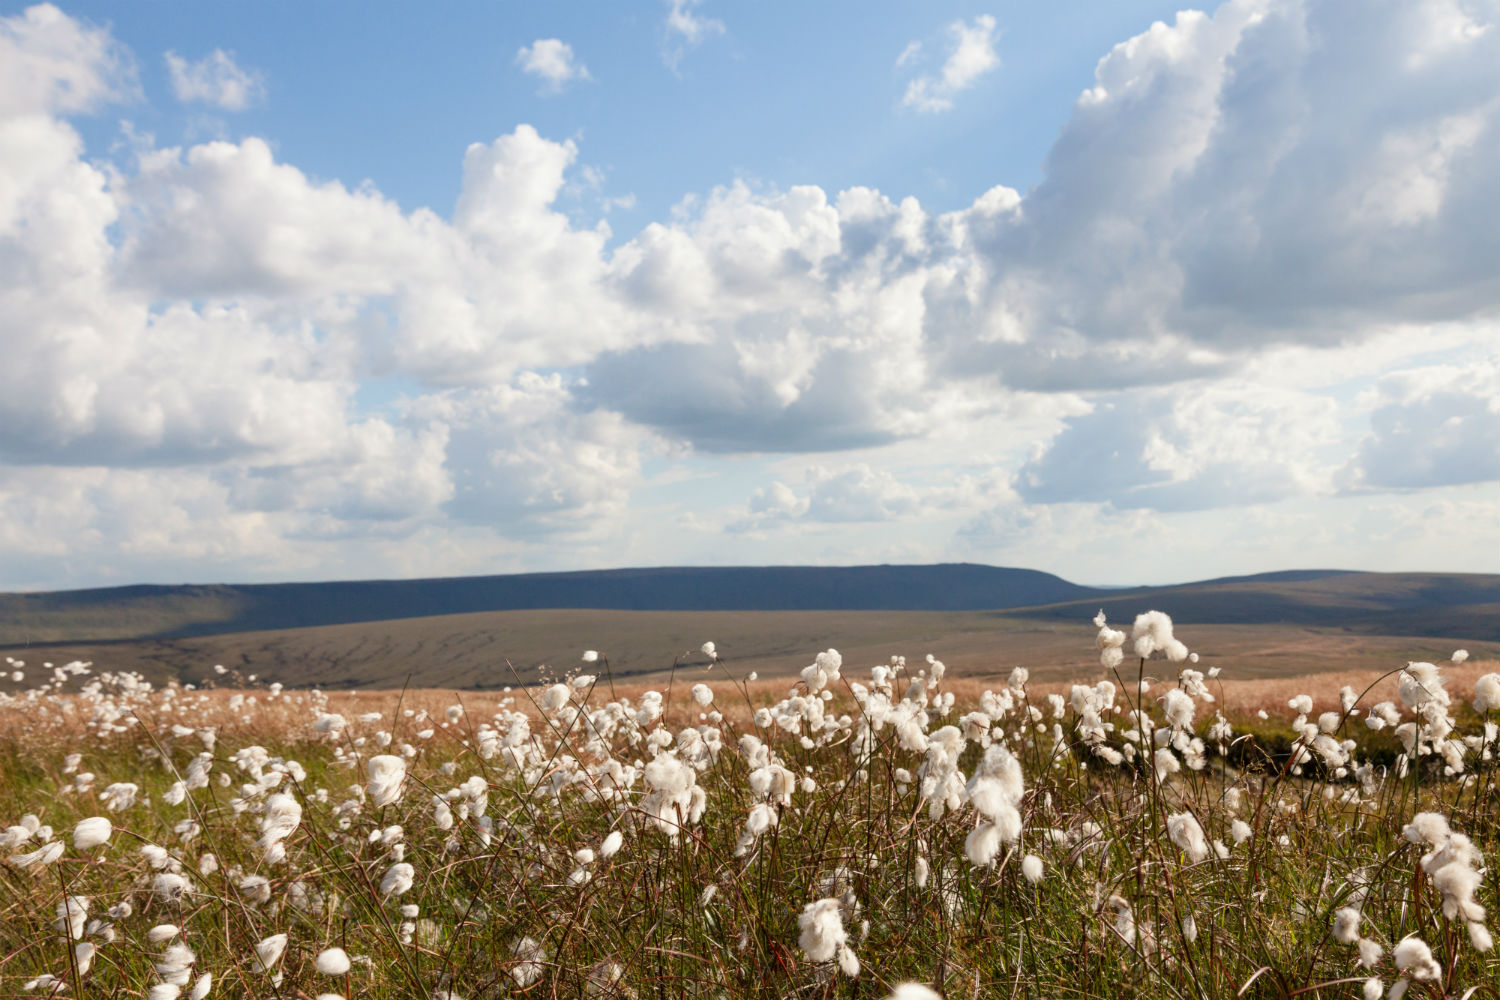 Cotton Fields looking out onto rolling hills